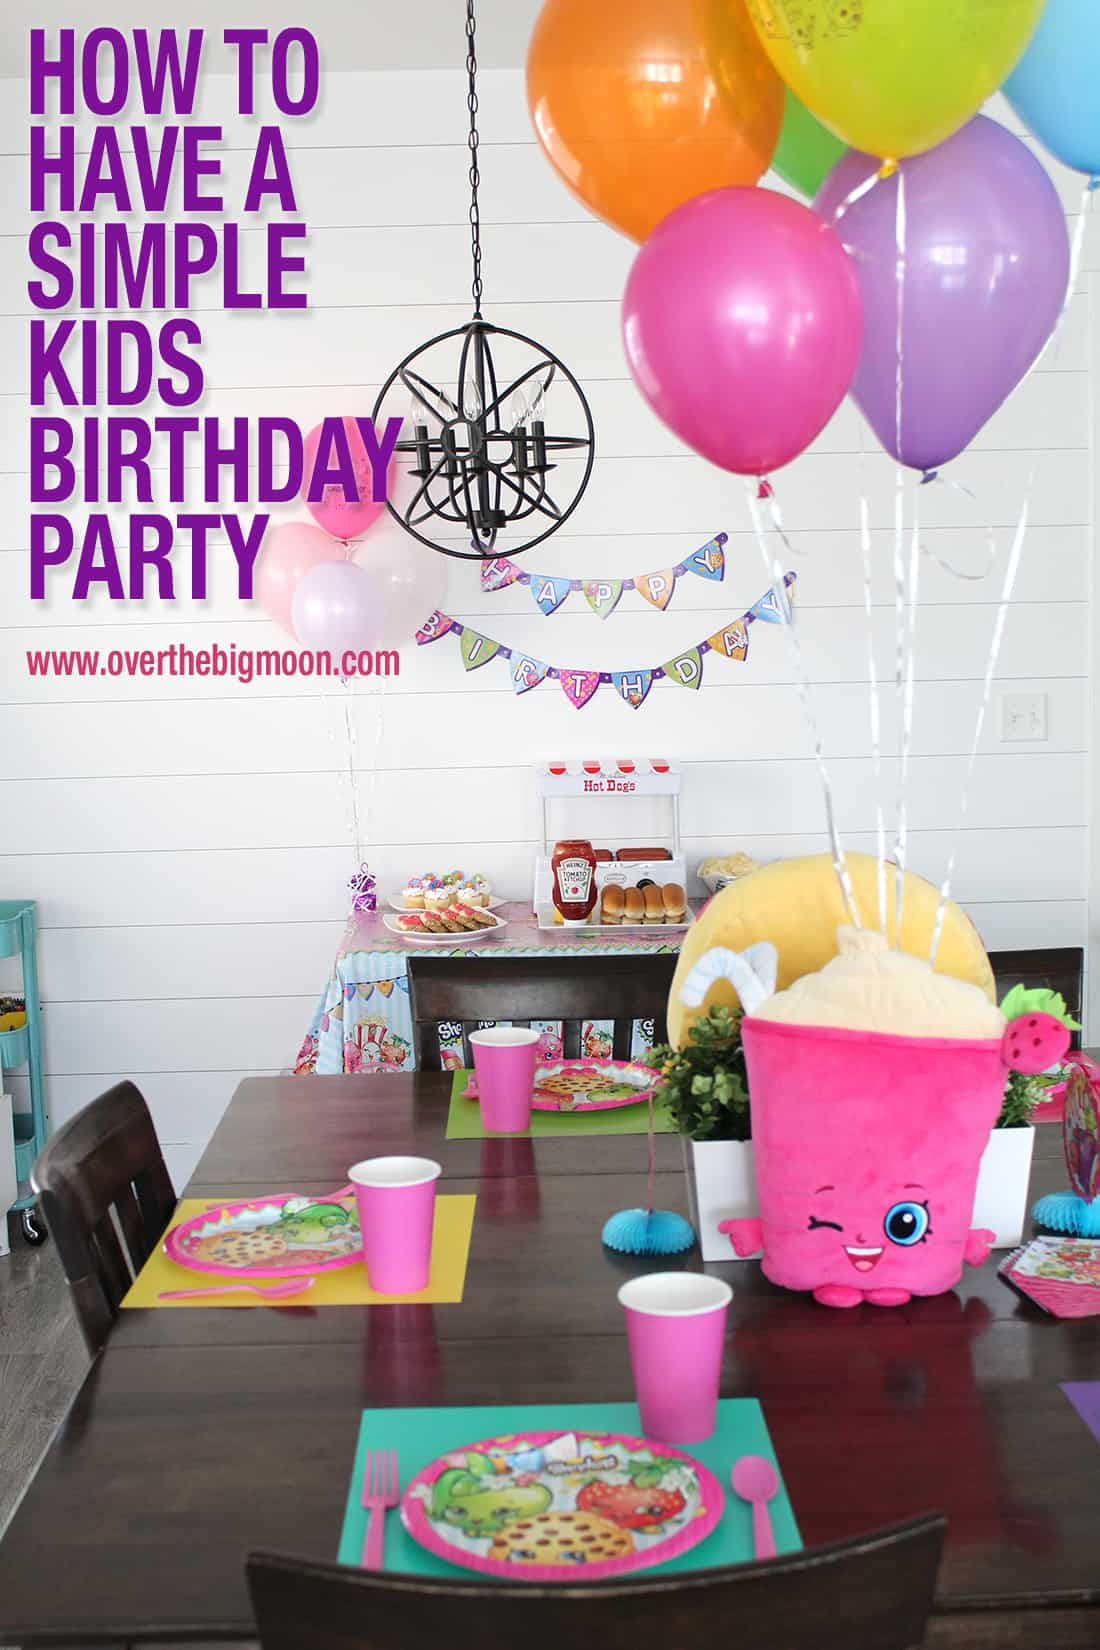 How To Have A Simple Kids Birthday Party